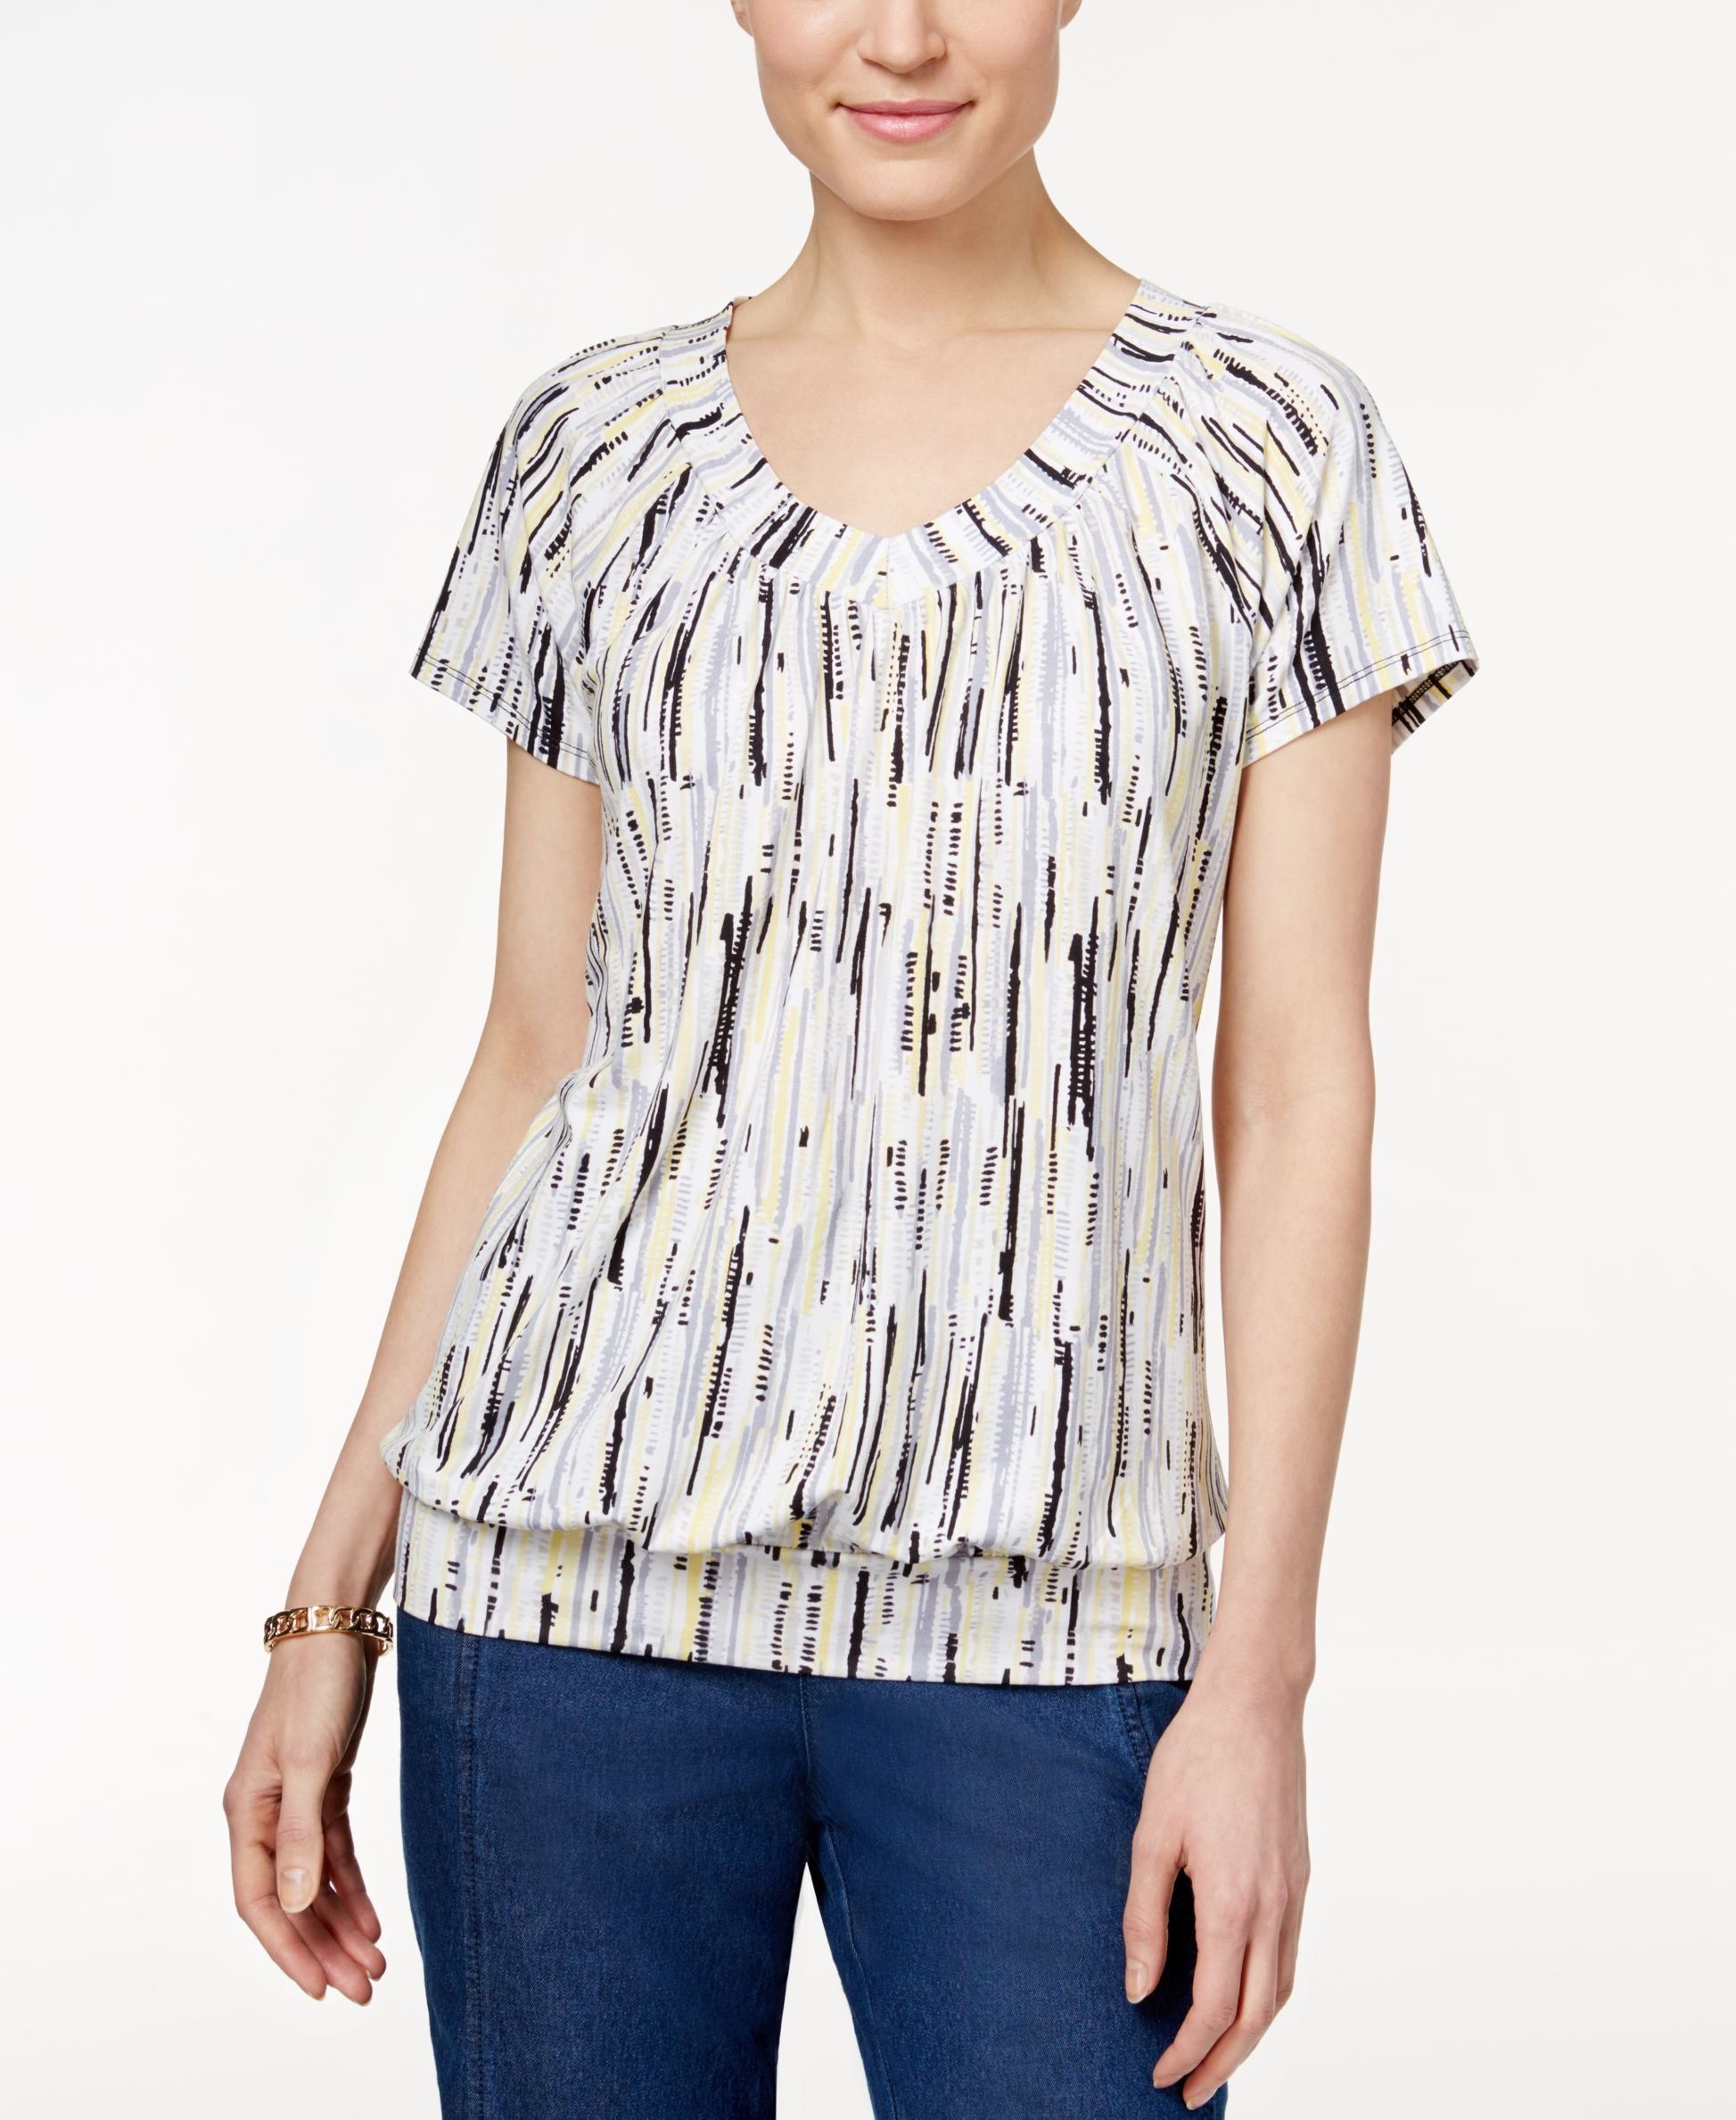 Jm Collection Printed Banded-Hem Top, Only at Macy's